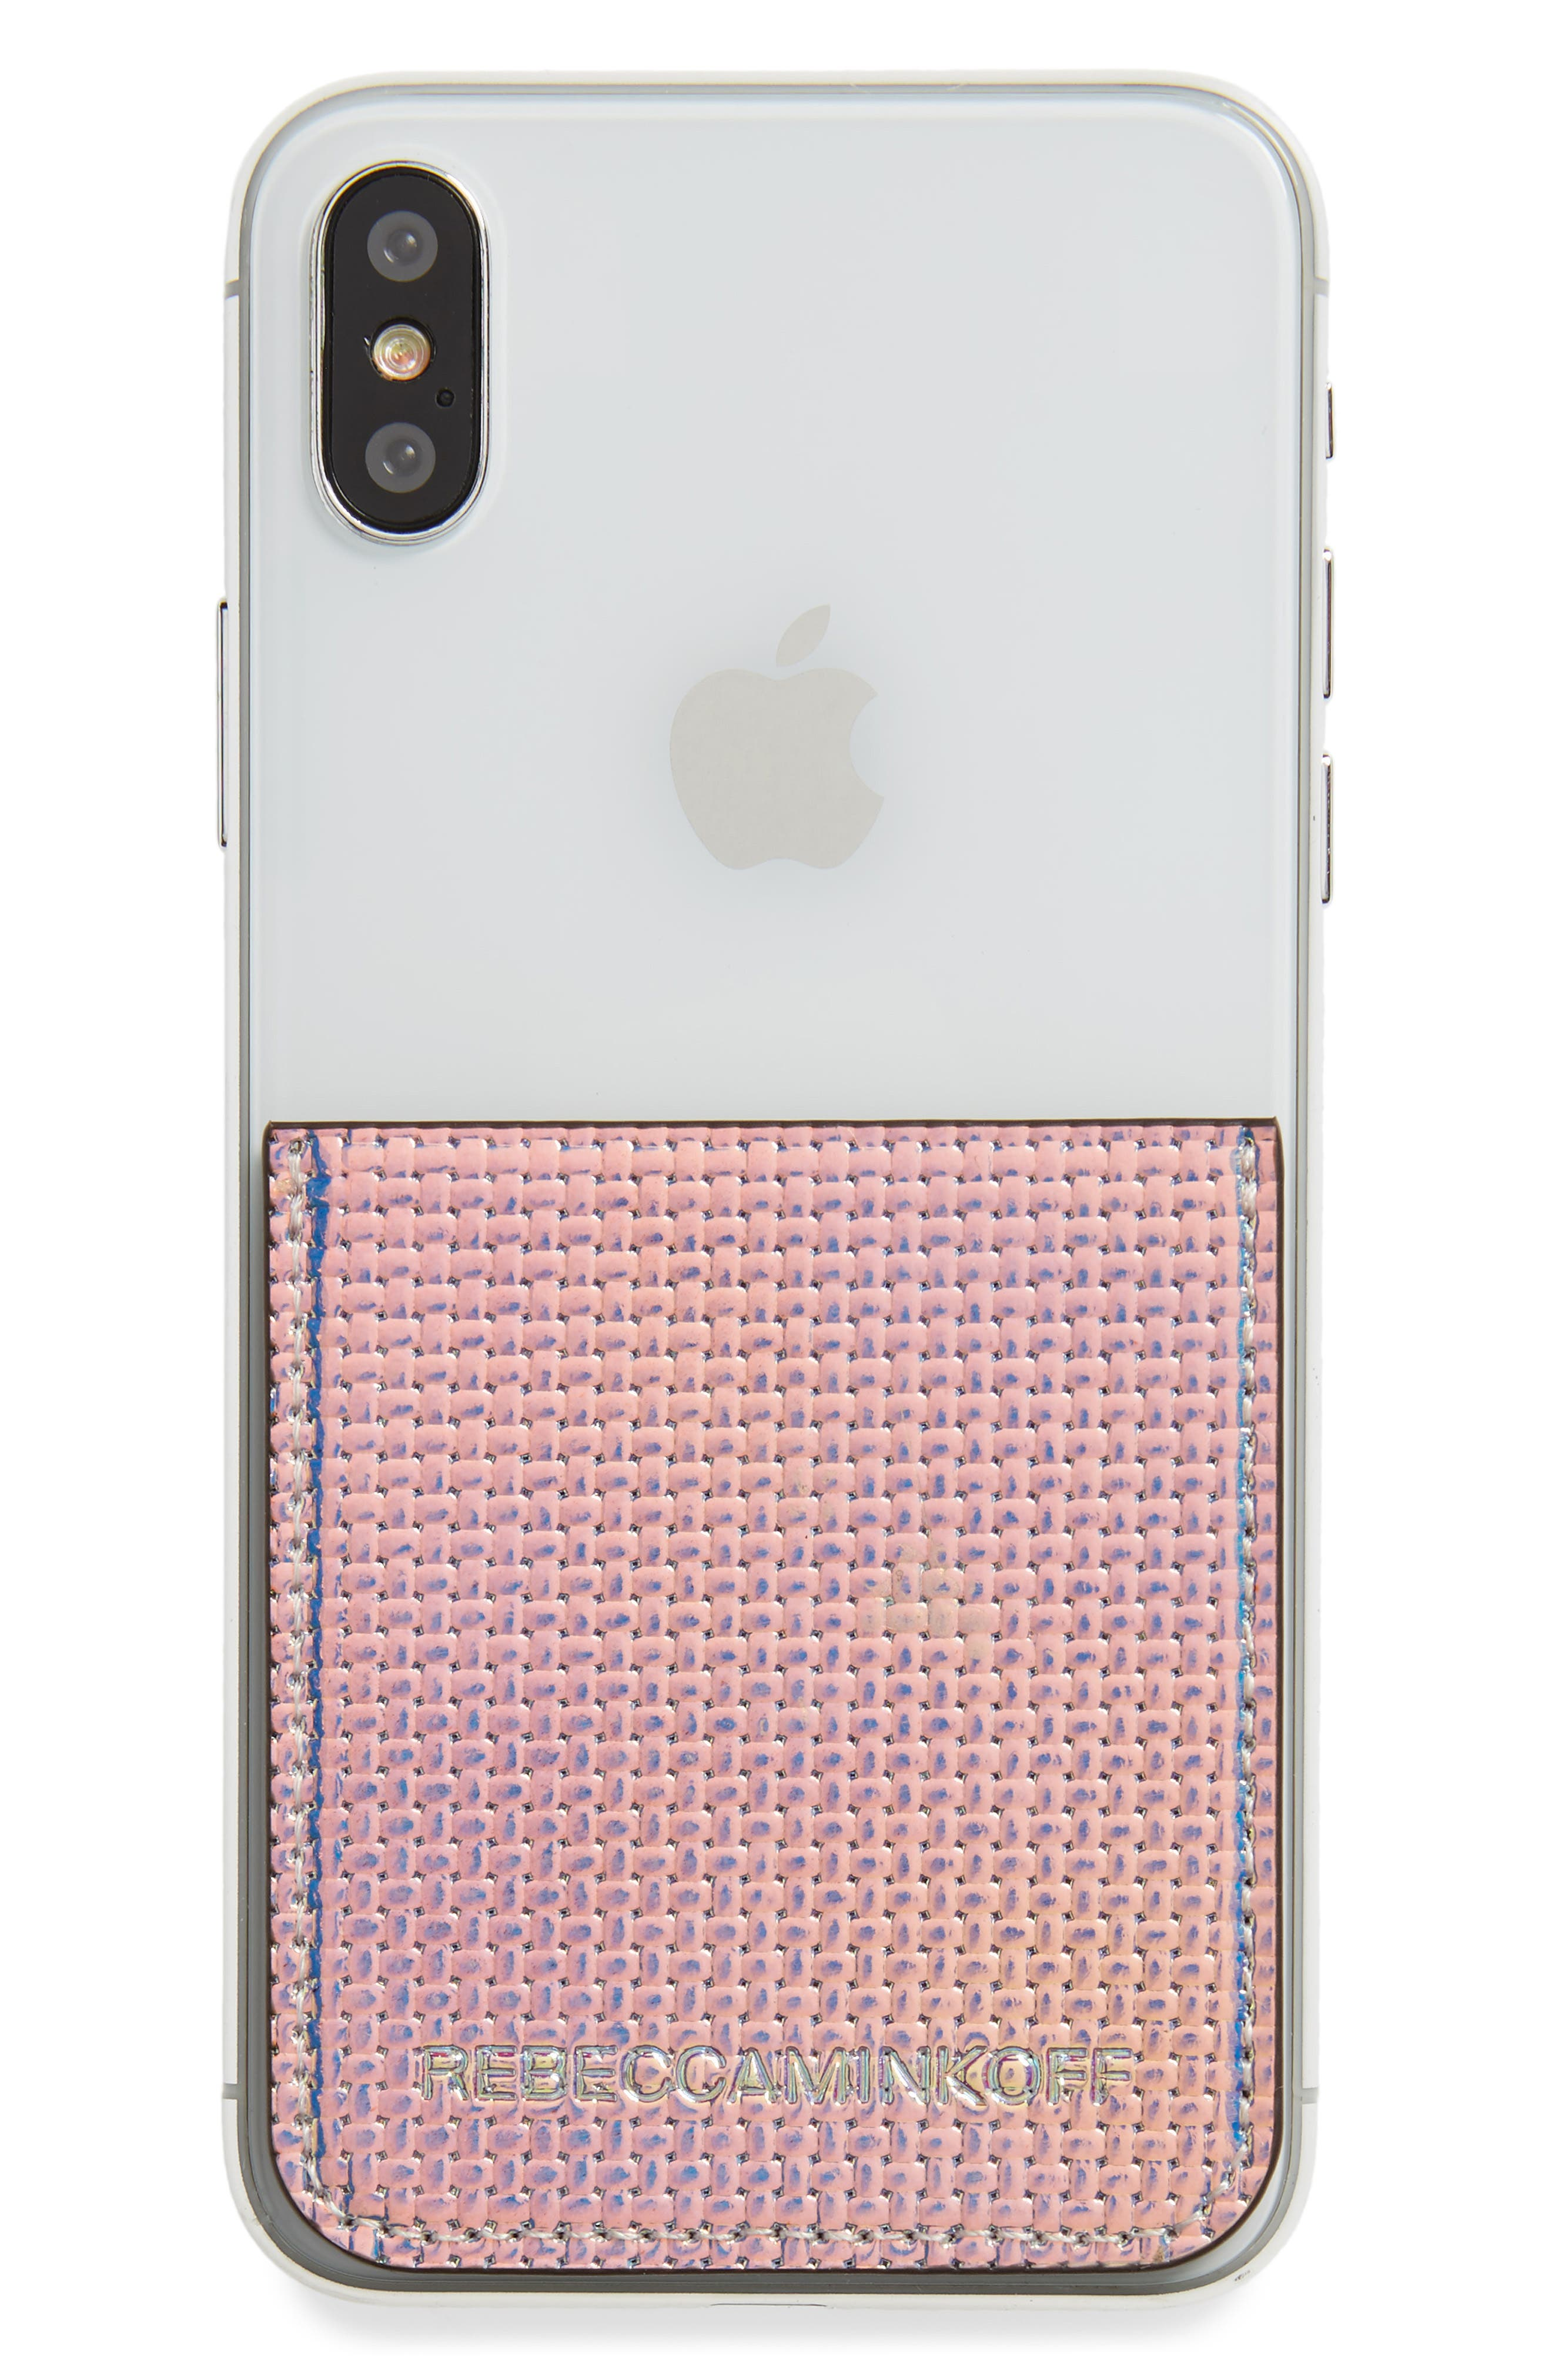 Adhesive Phone Sticker Pocket,                         Main,                         color, Holographic